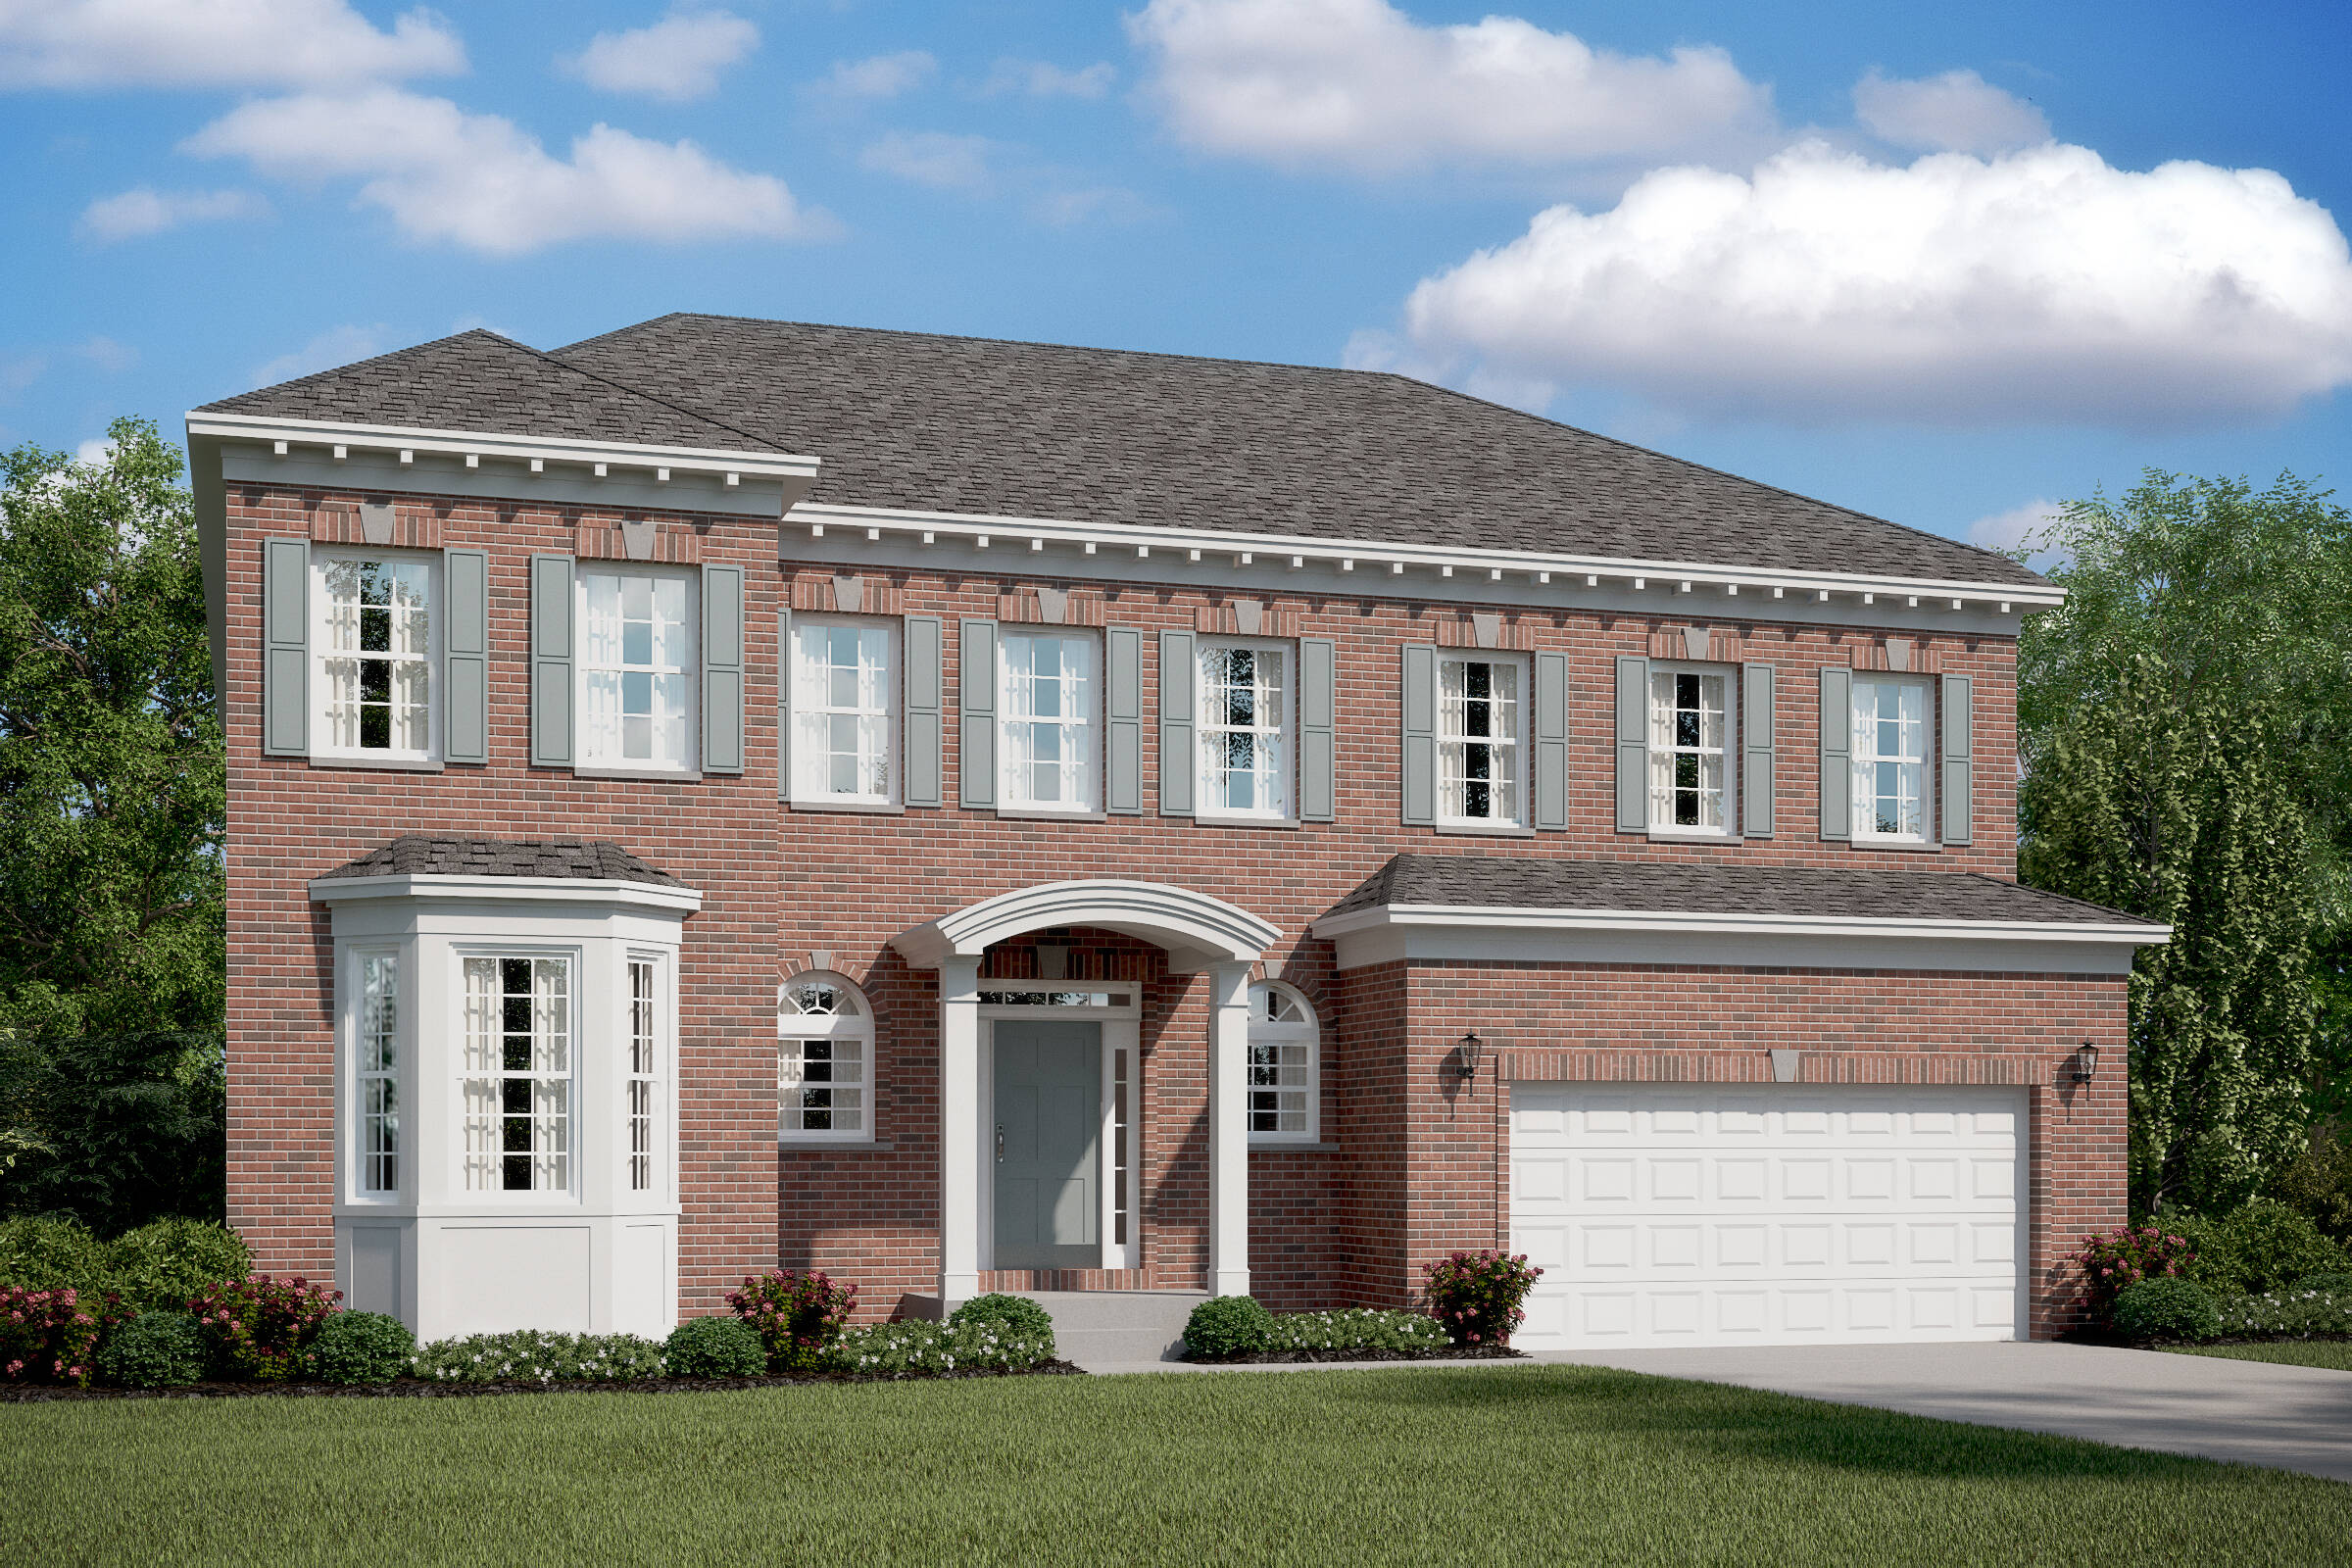 louisville-jb-new-homes-at-burke-junction-in-virginia